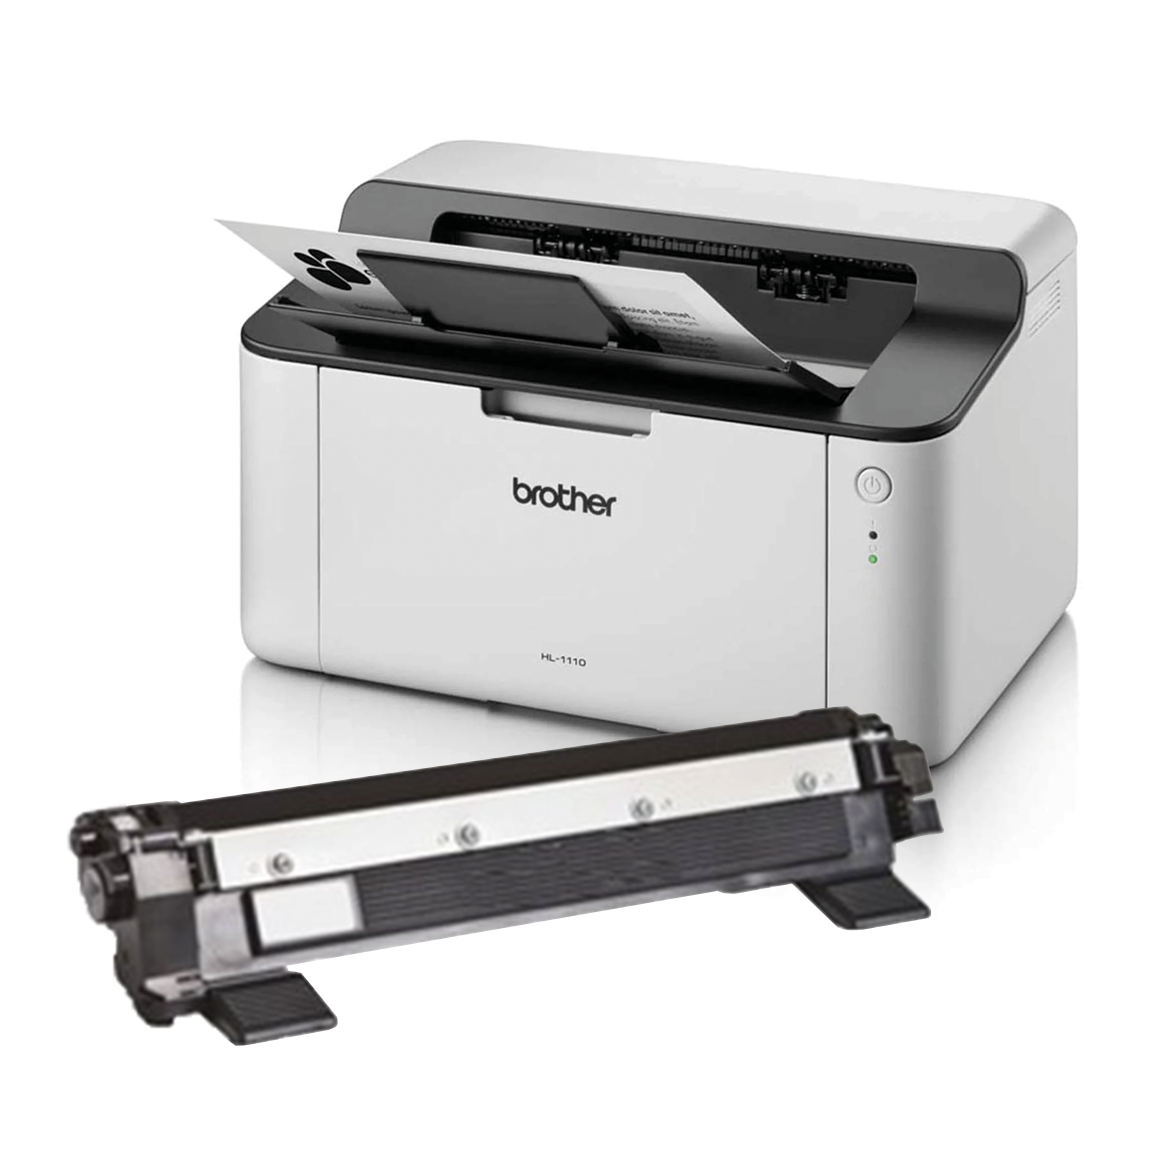 Brother HL-1110 laserprinter zwart-wit combideal